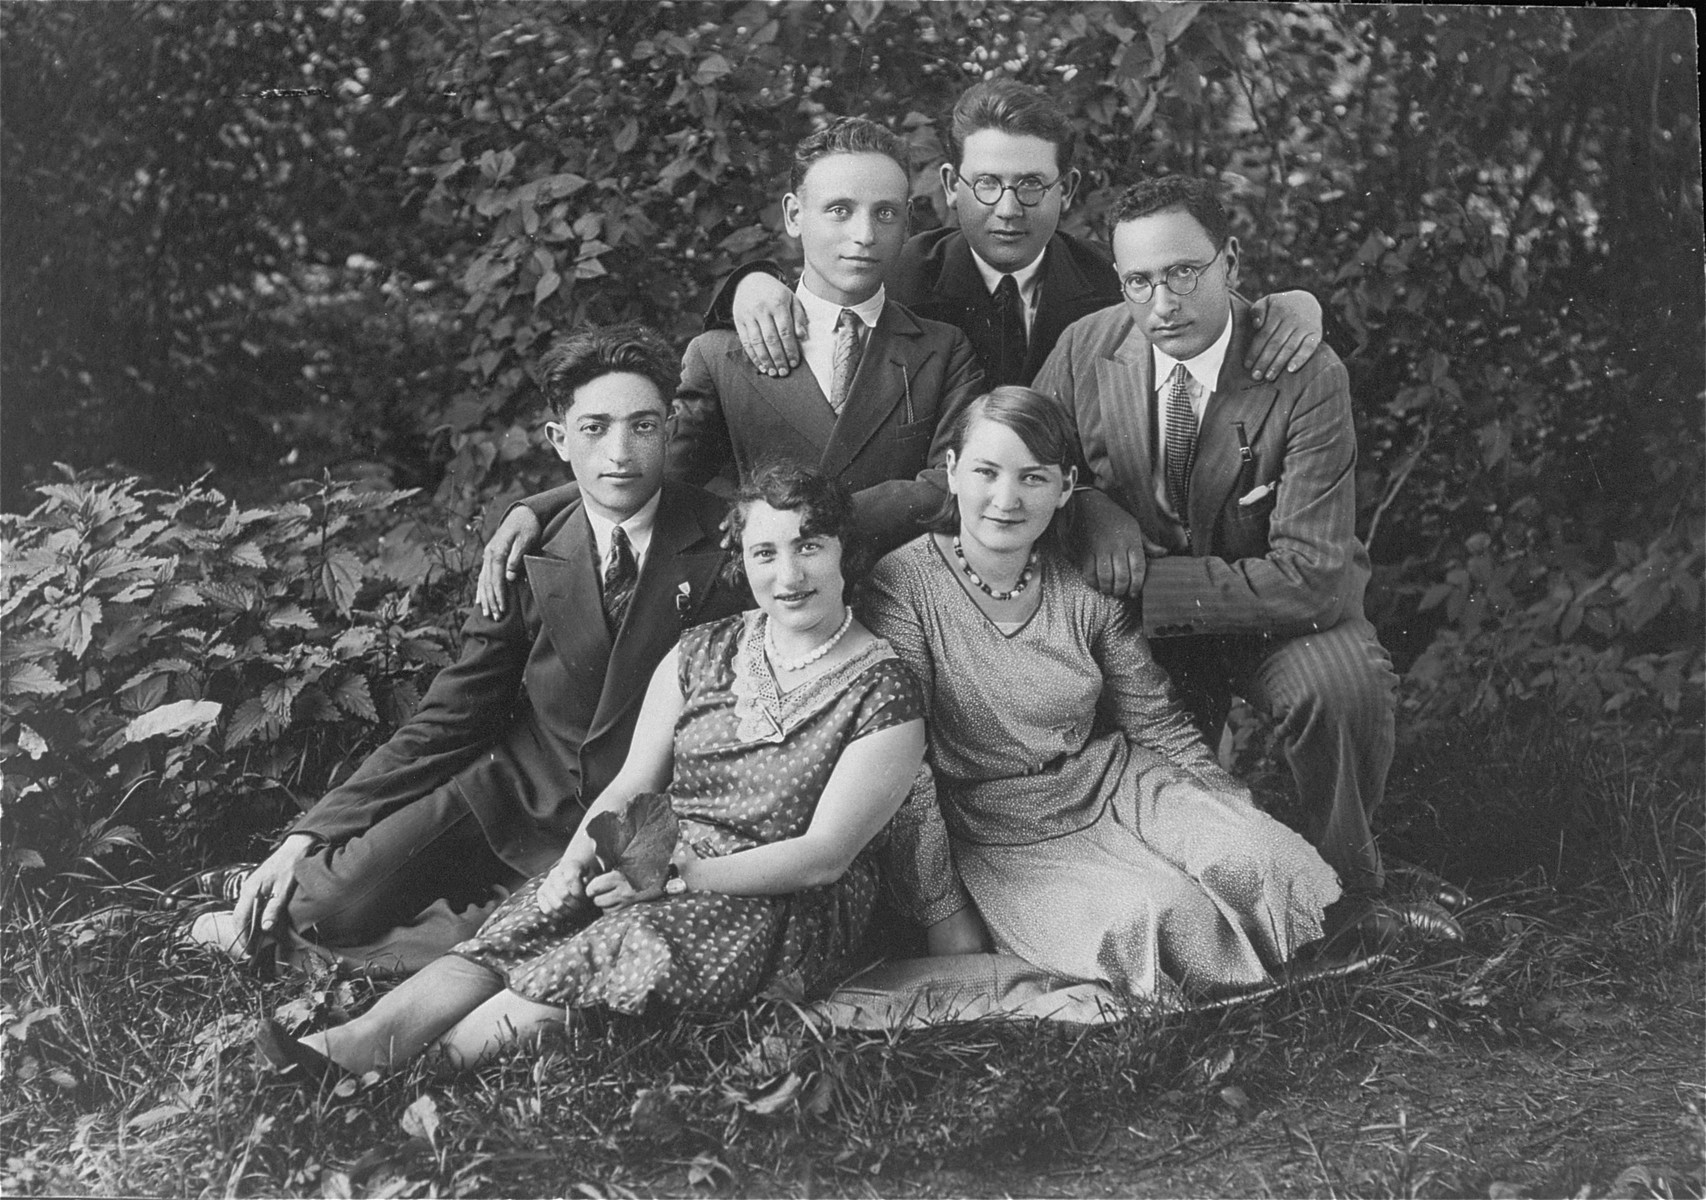 Group portrait of young Jewish men and women in Lithuania. Pictured at the far right is the donor's father, Eliezer Kaplan.